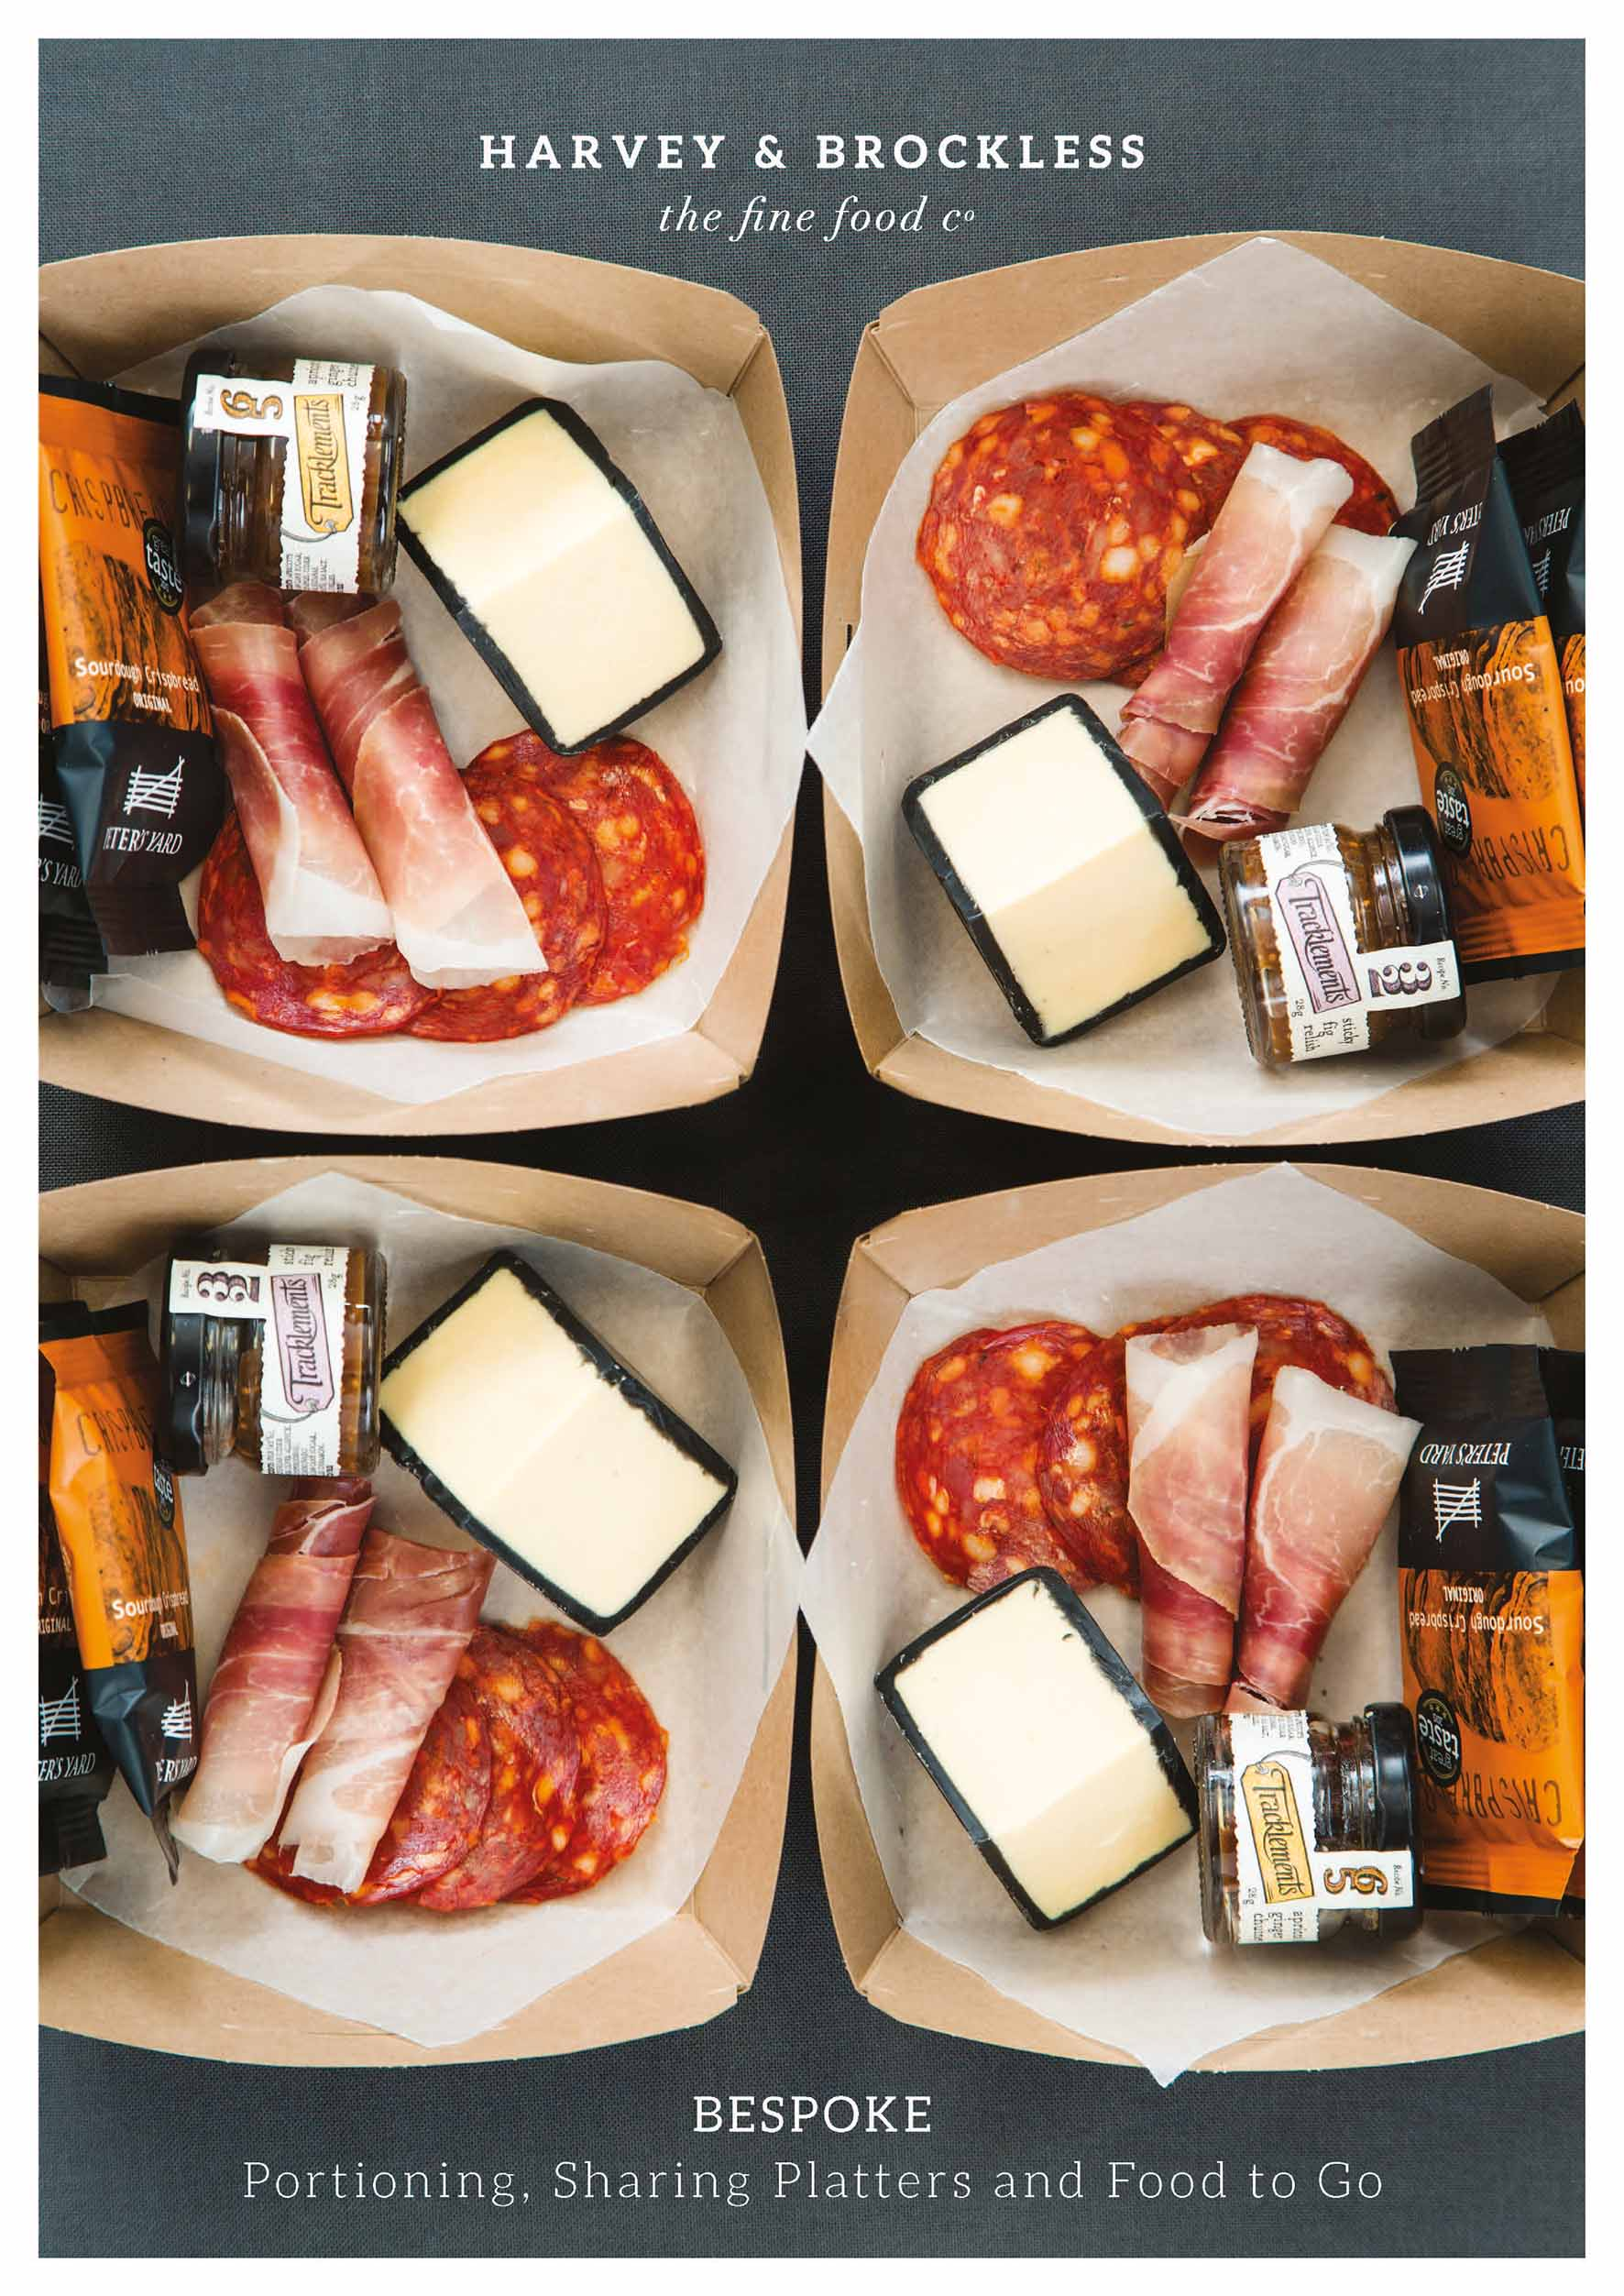 Bespoke - Portioning, Sharing Platters and Food to Go